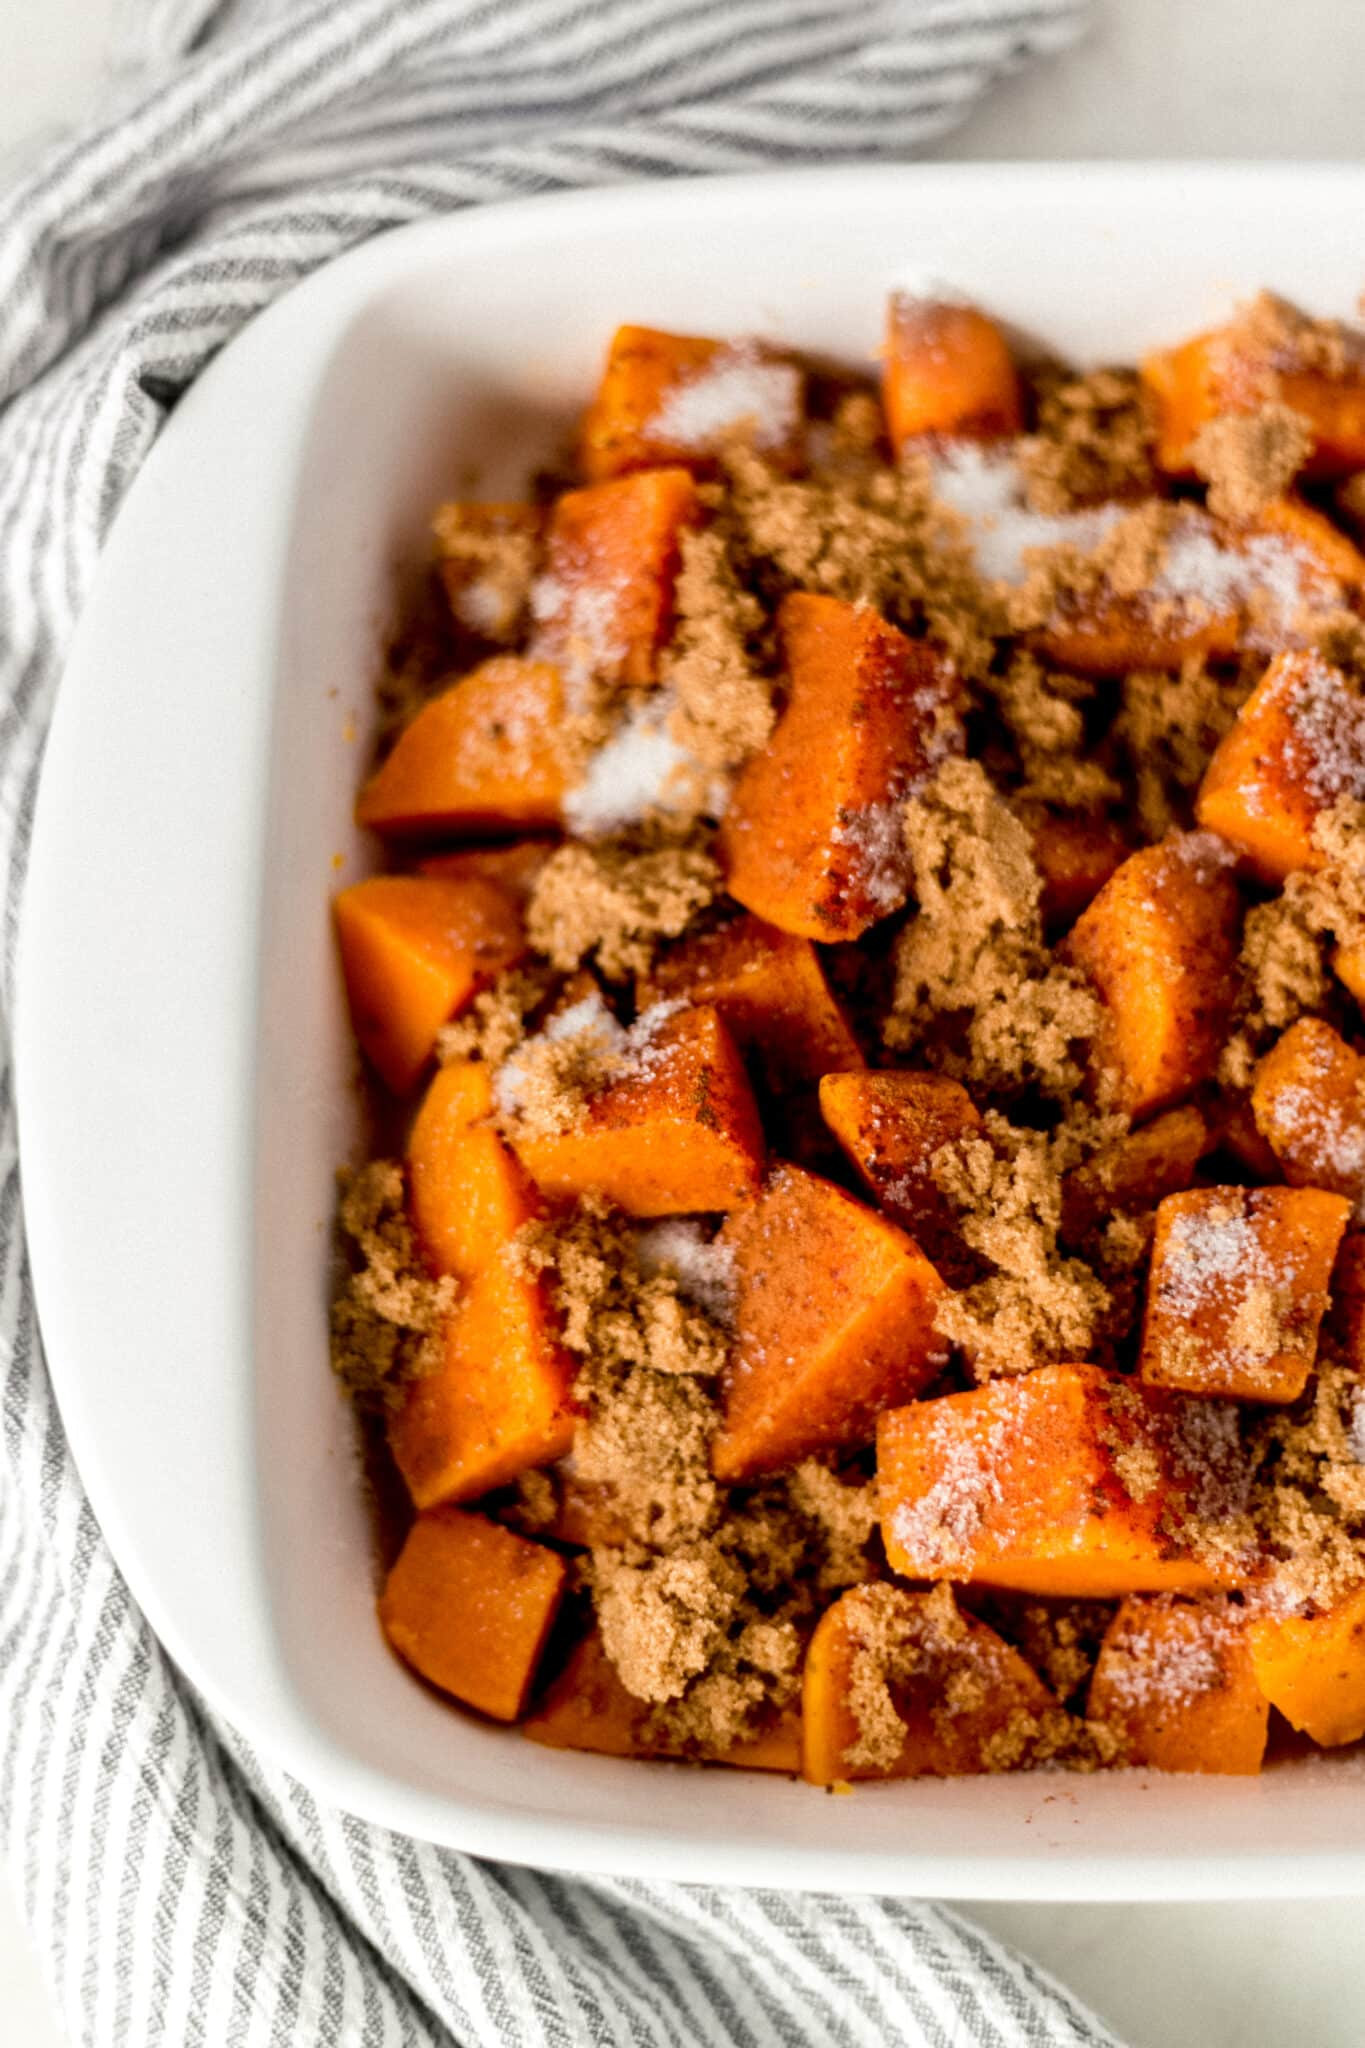 yams in a white baking dish topped with granulated sugar and brown sugar